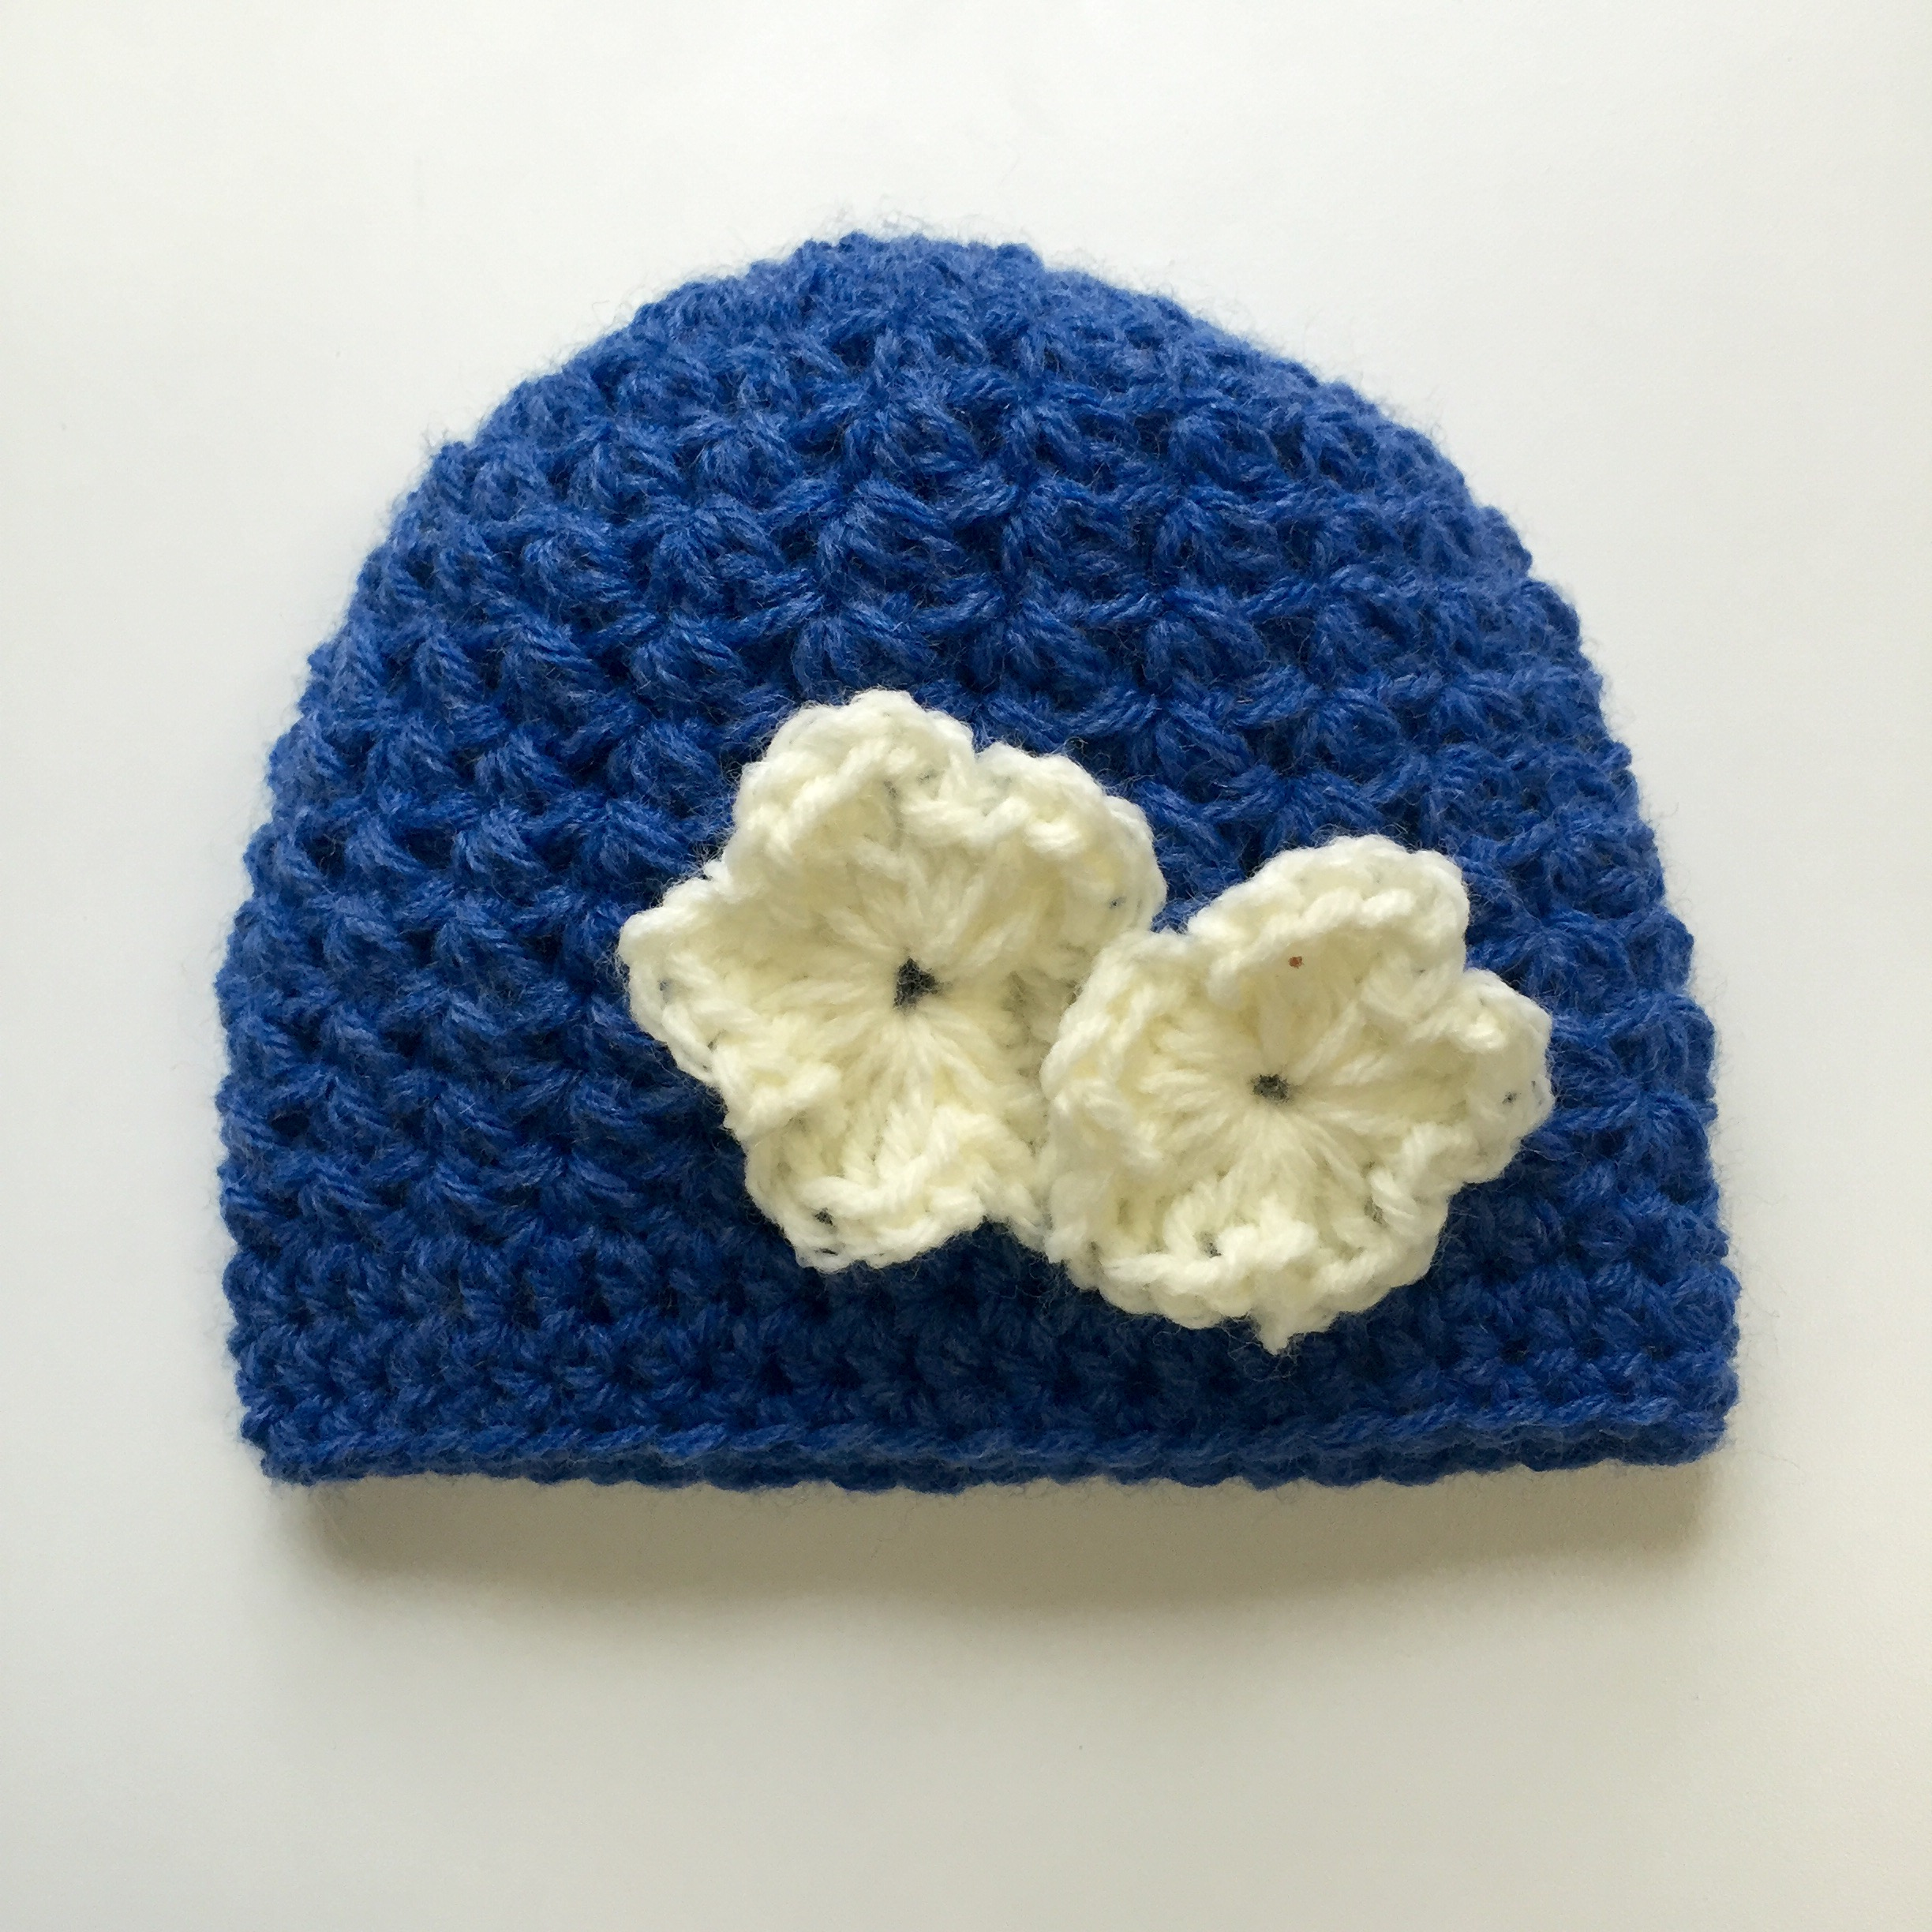 Aleah's Hat in blue with flowers crochet pattern